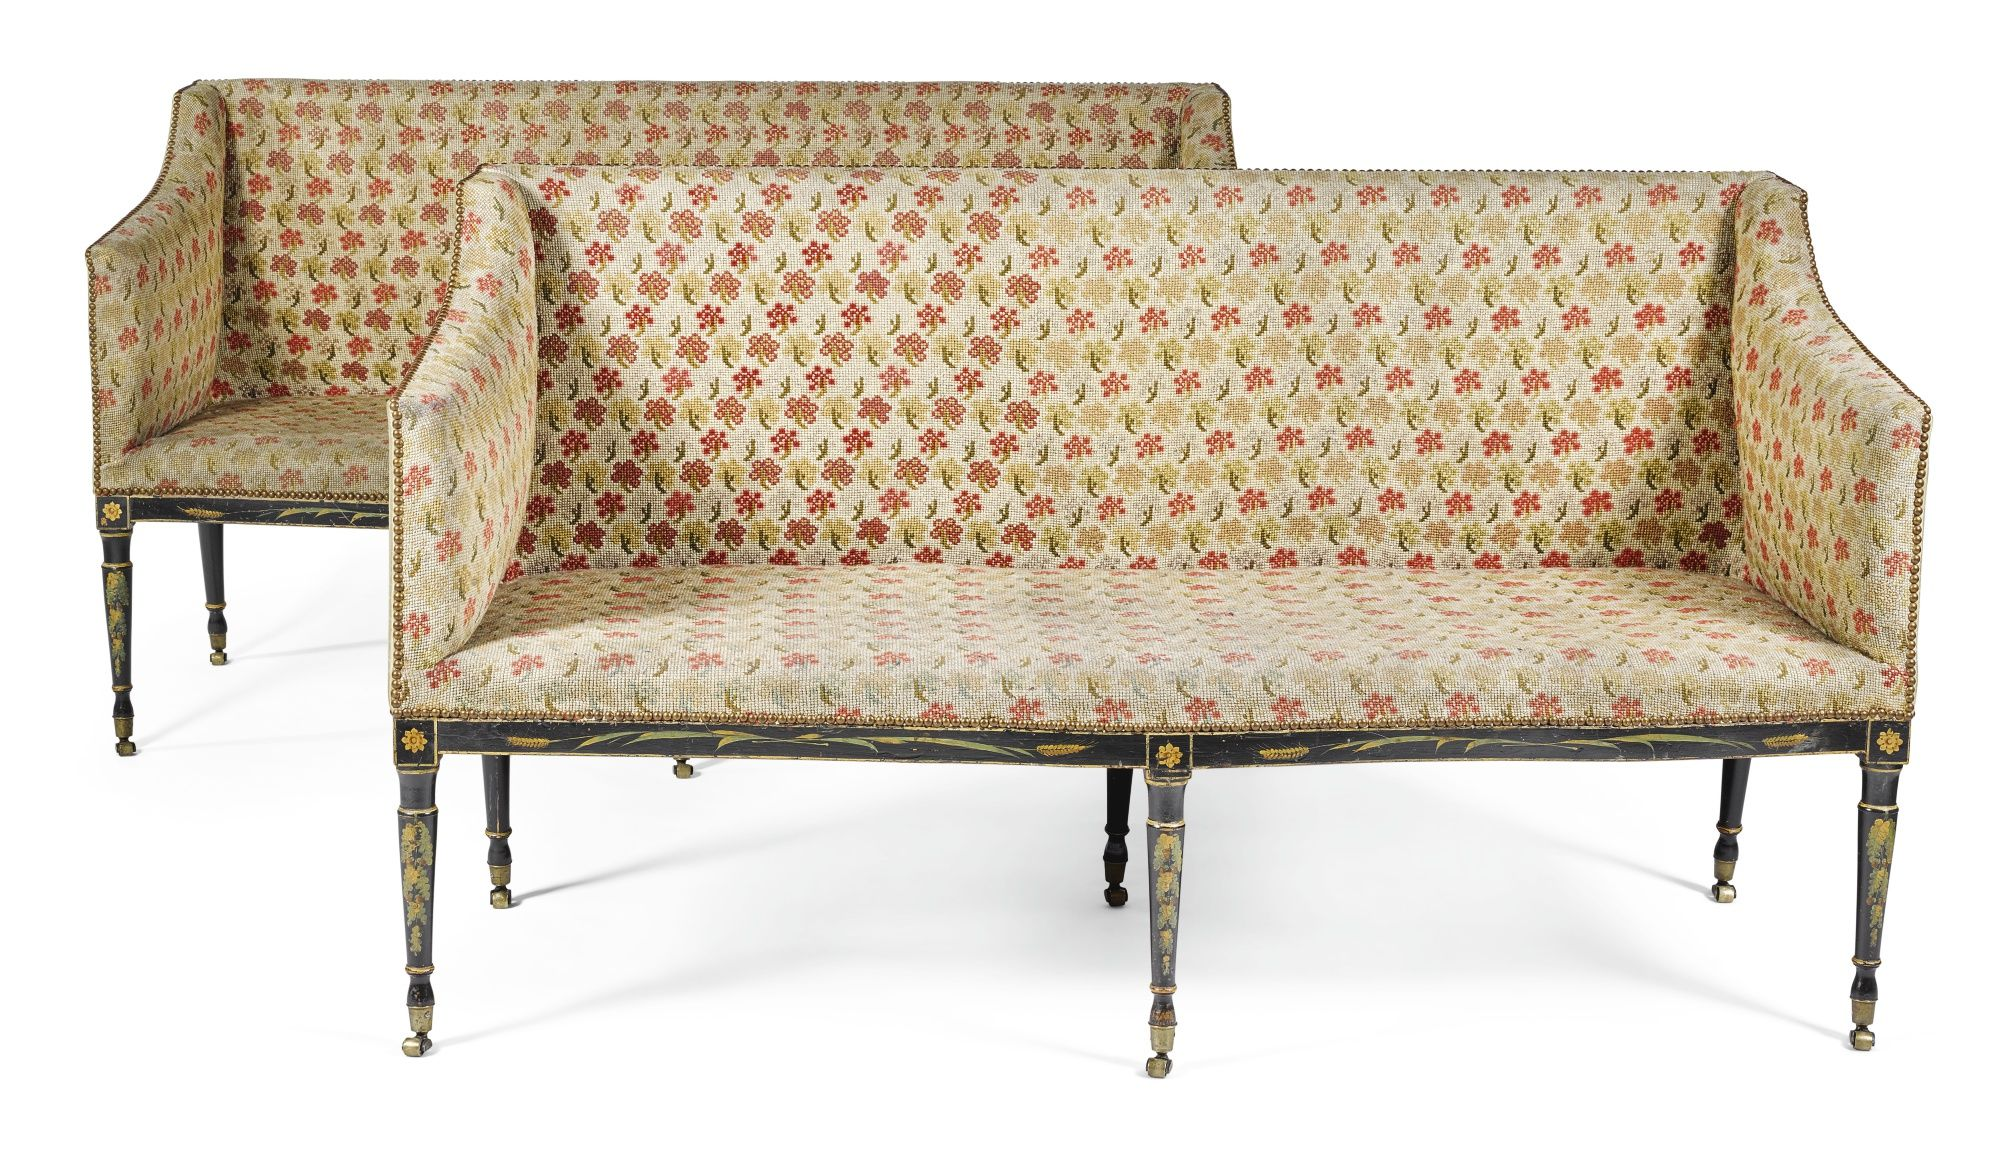 A pair of Scottish George III painted and needlework upholstered